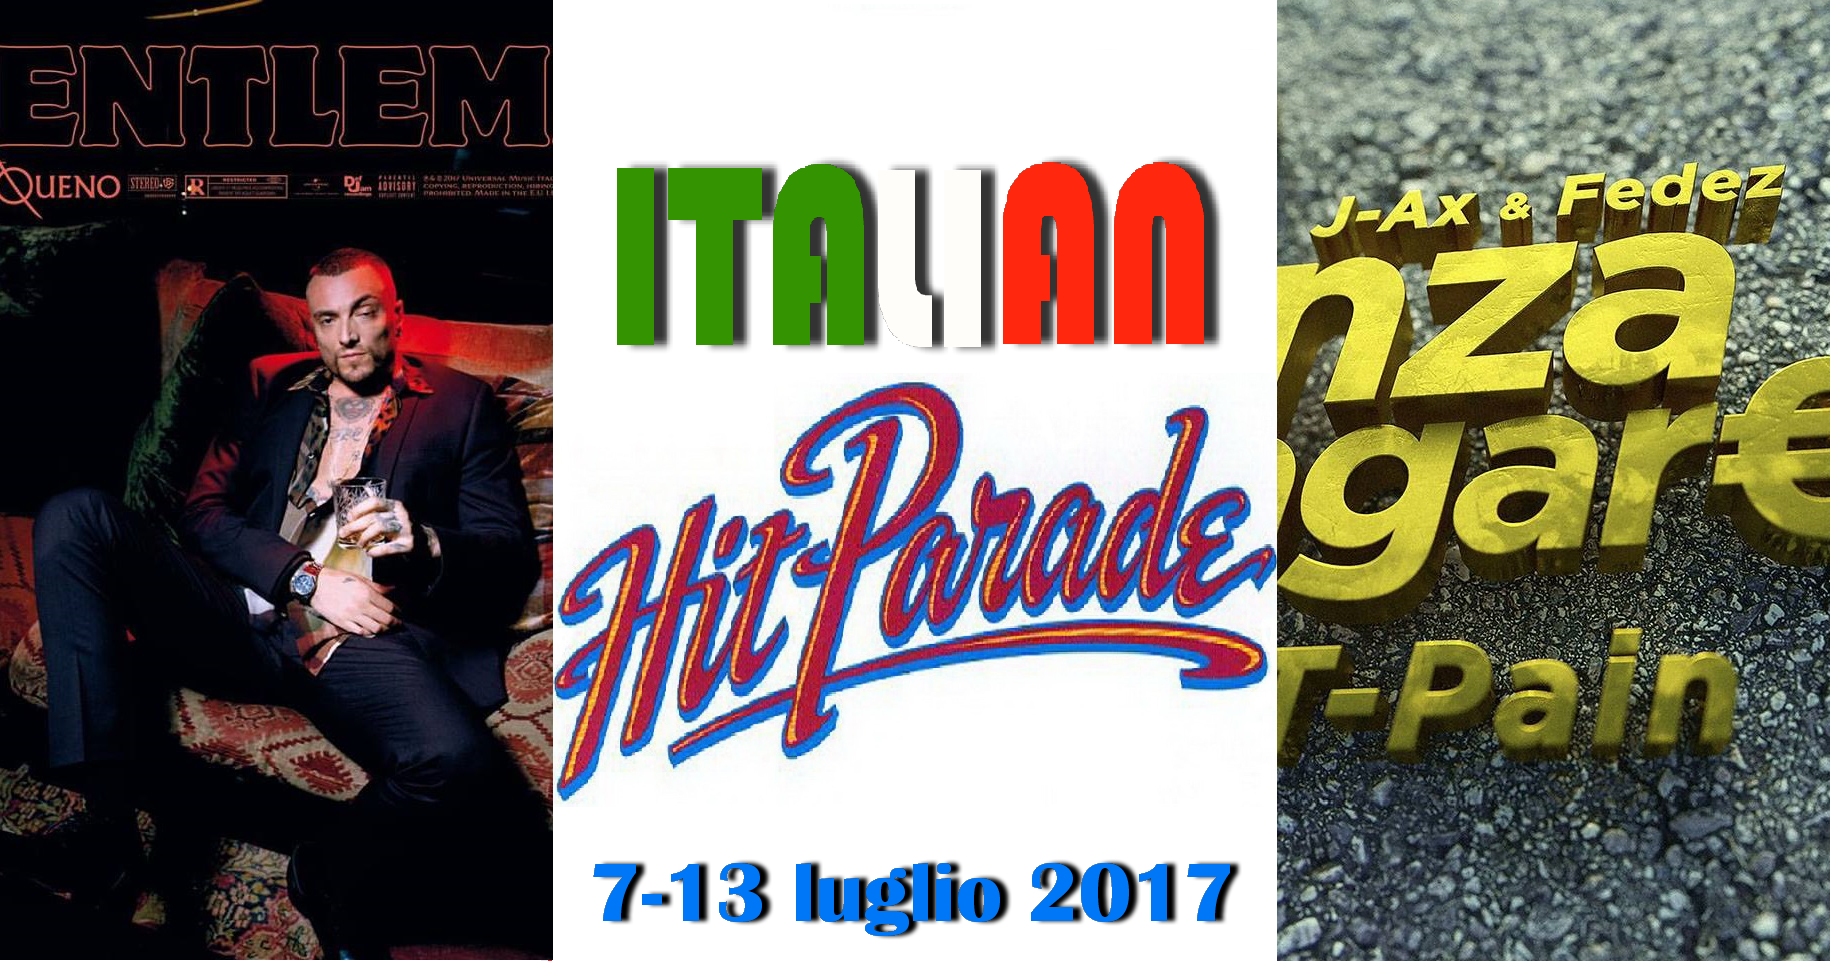 Hit Parade 14-07-17 J-Ax & Fedez